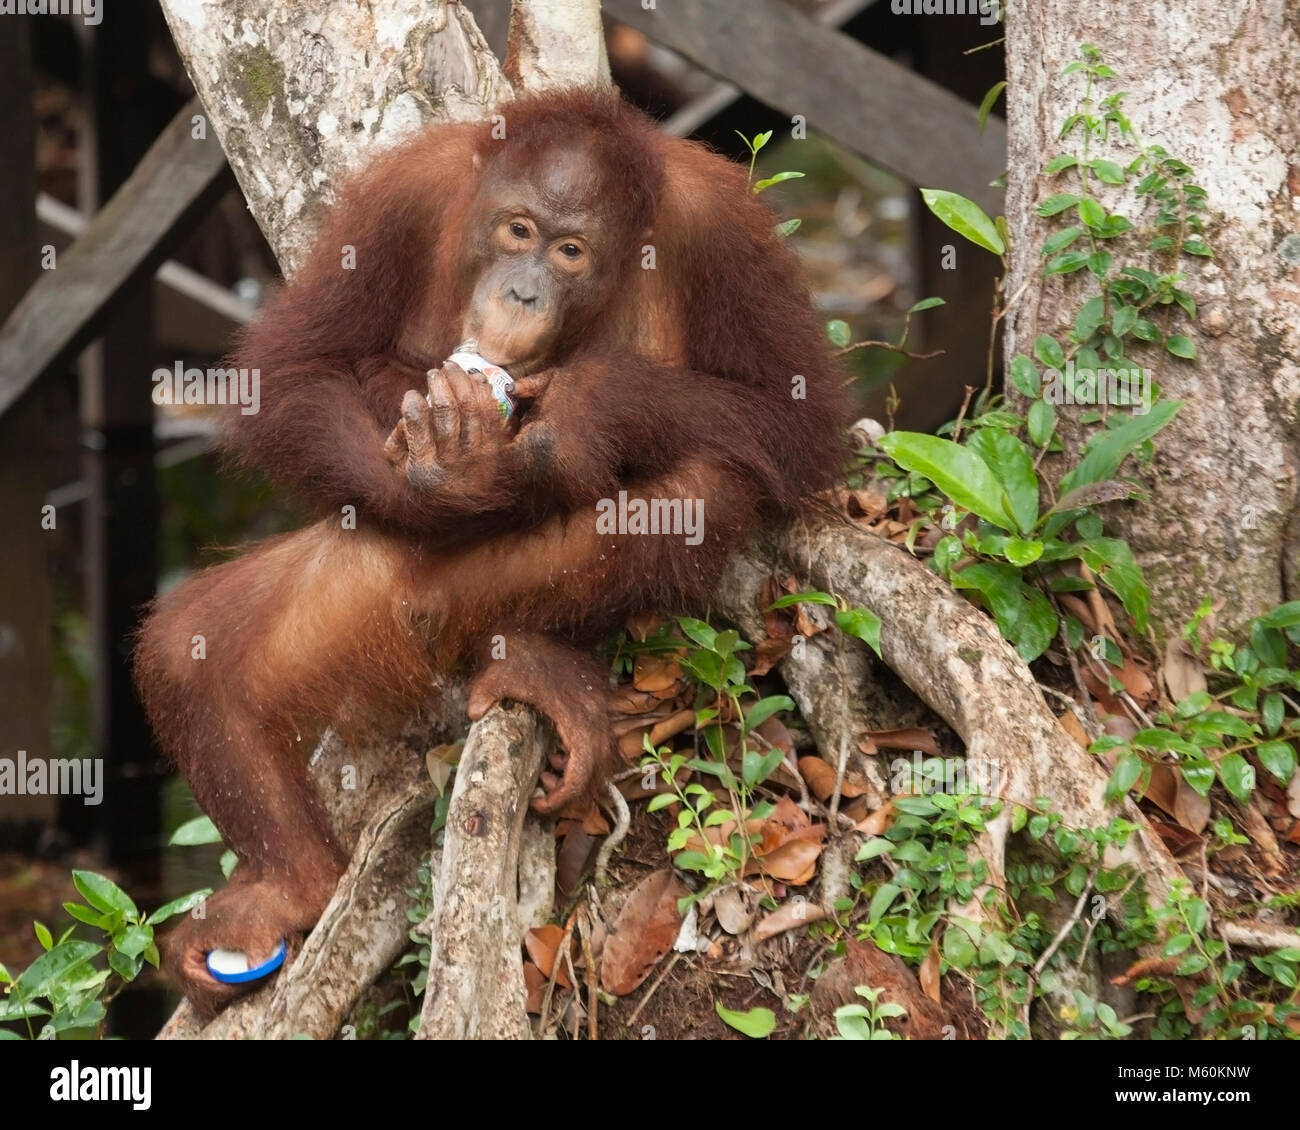 Wild Bornean Orangutan (Pongo pygmaeus) young male eating food out of discarded jar, and grasping the jar's - Stock Image